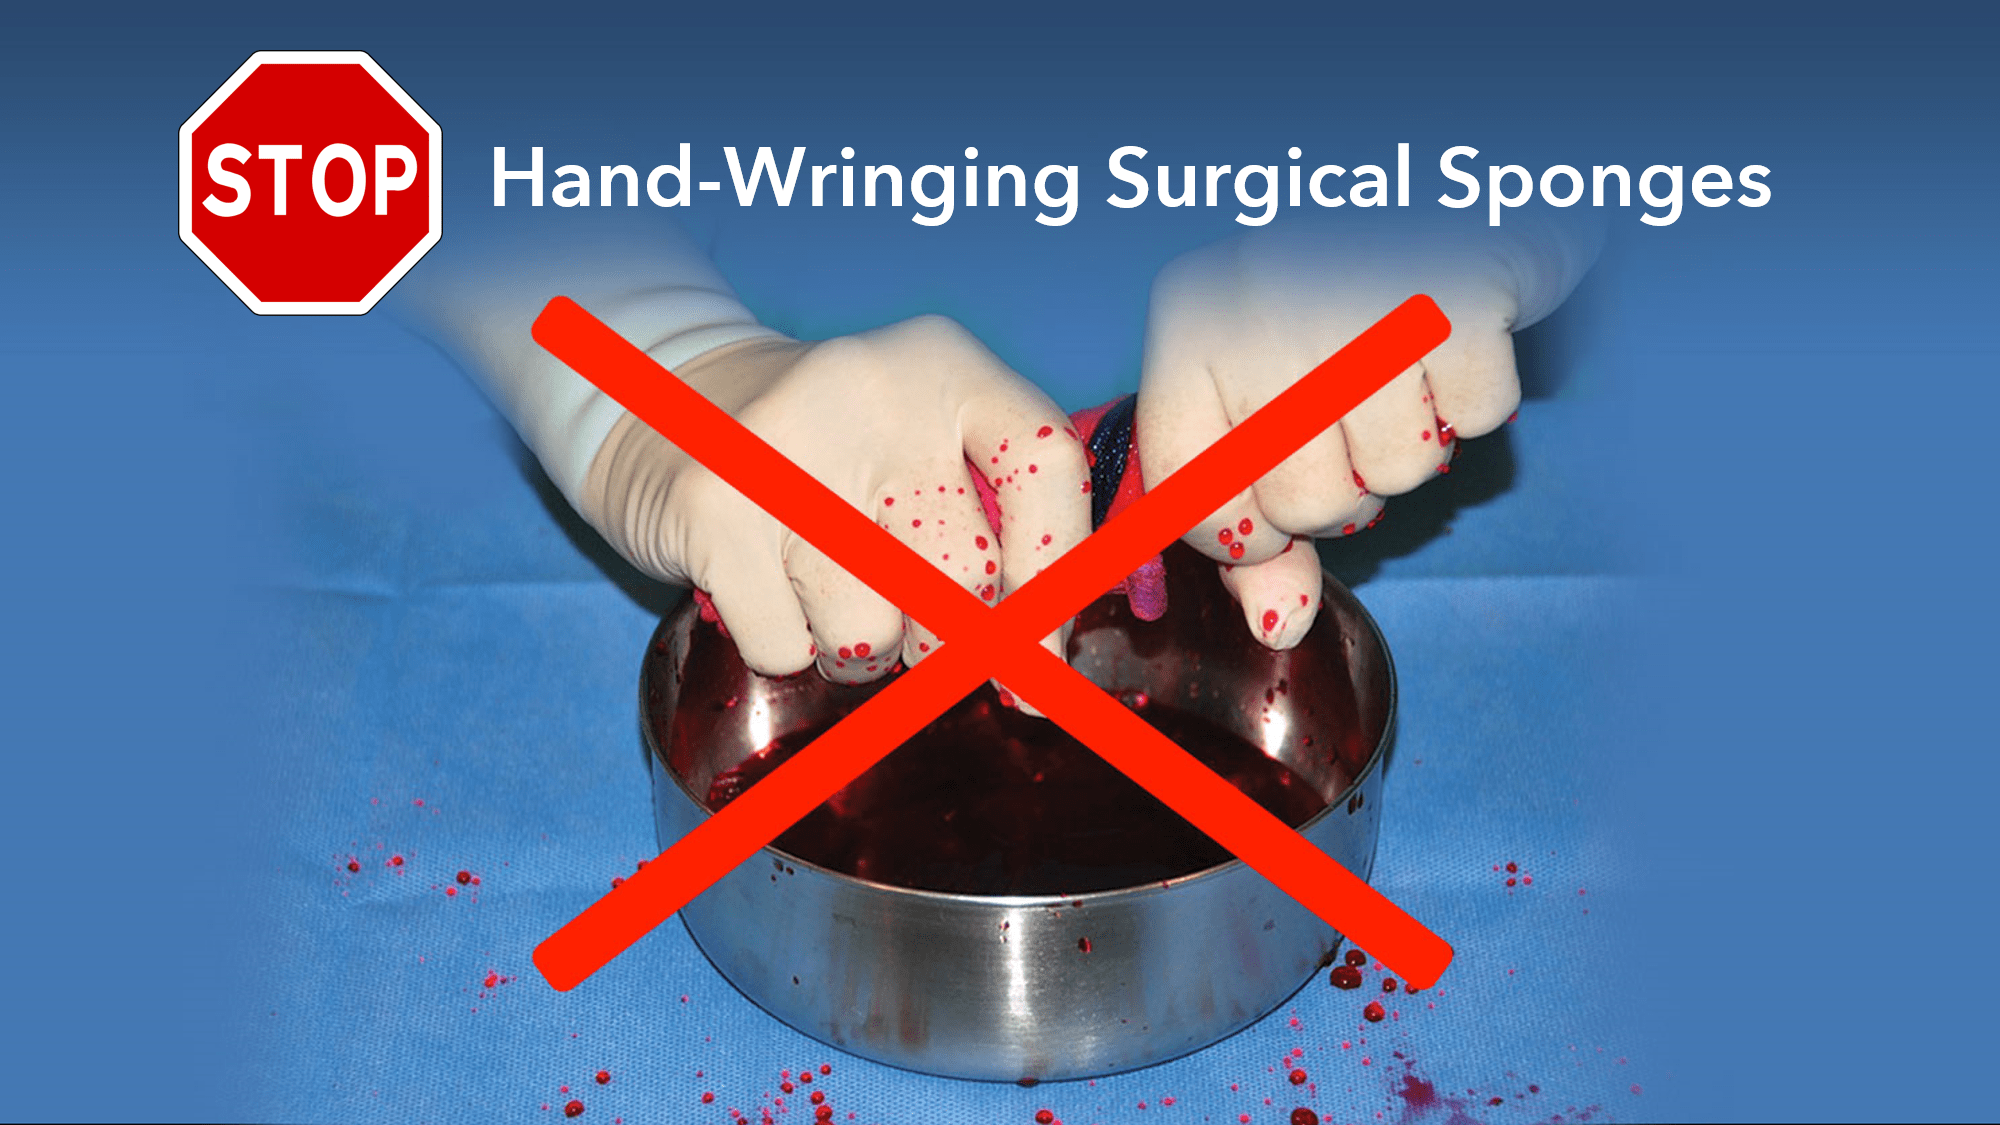 Stop Hand-wringing Surgical Sponges